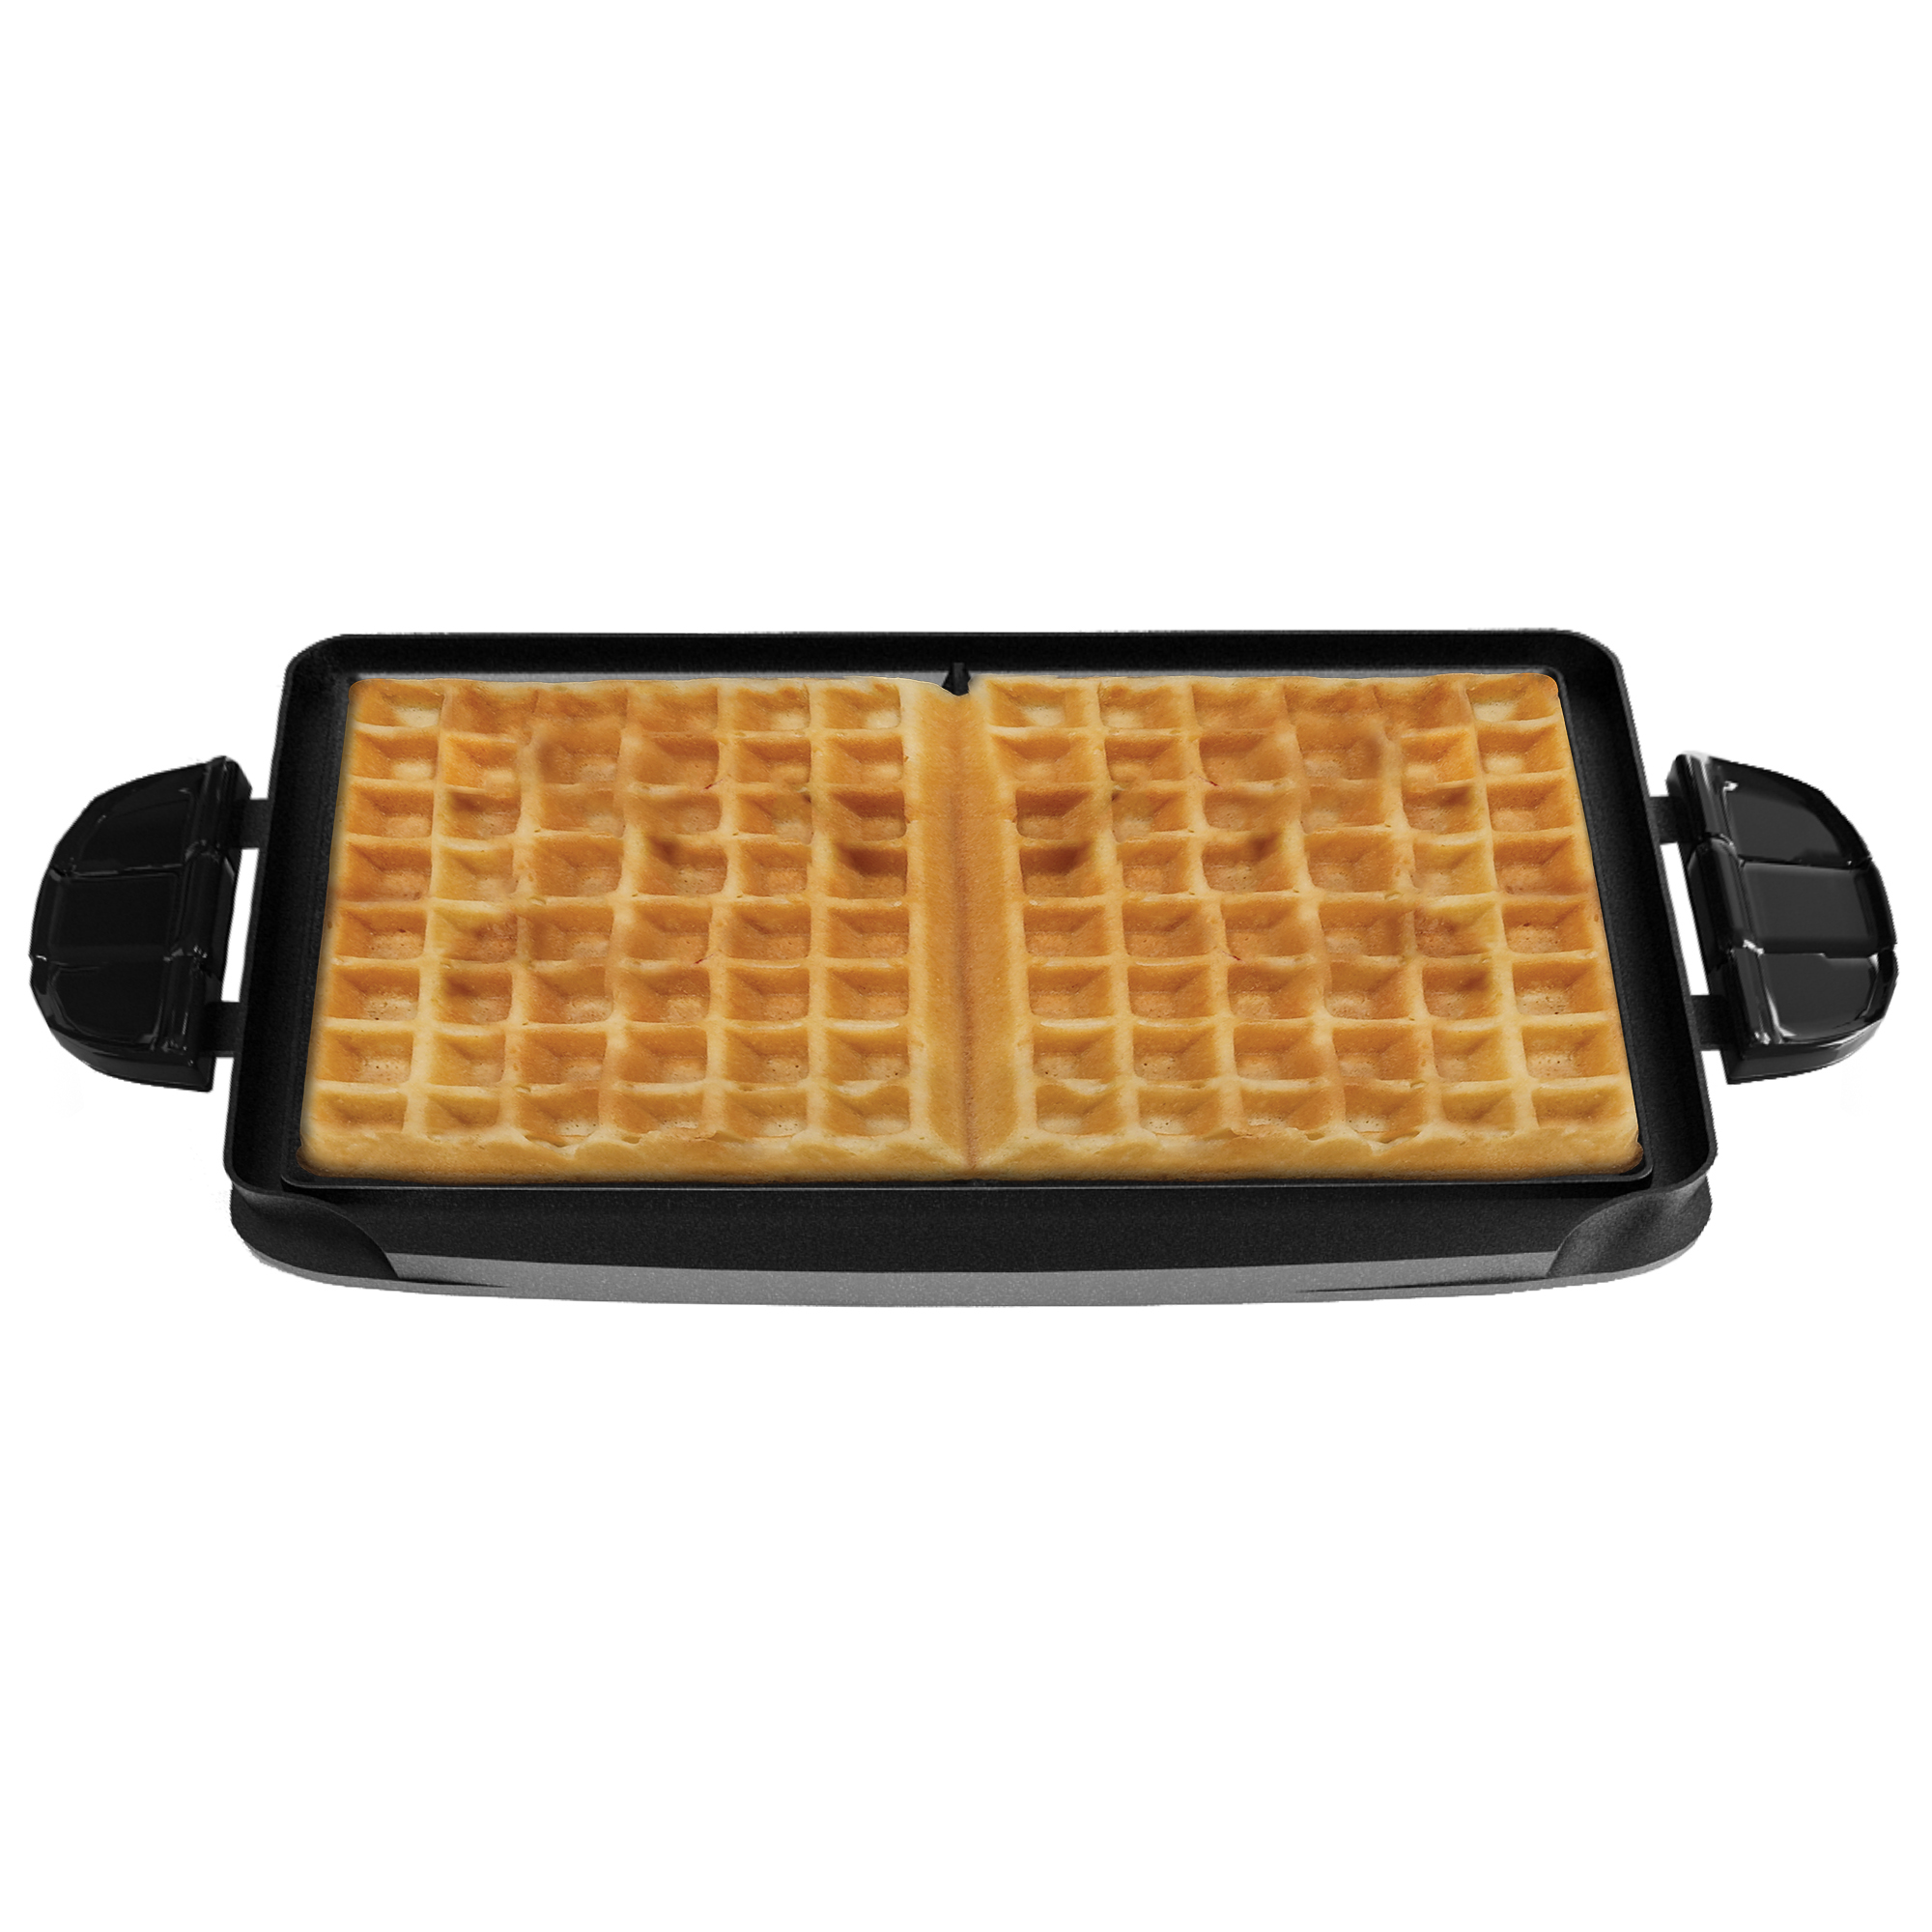 2 evolve grill system waffle plates